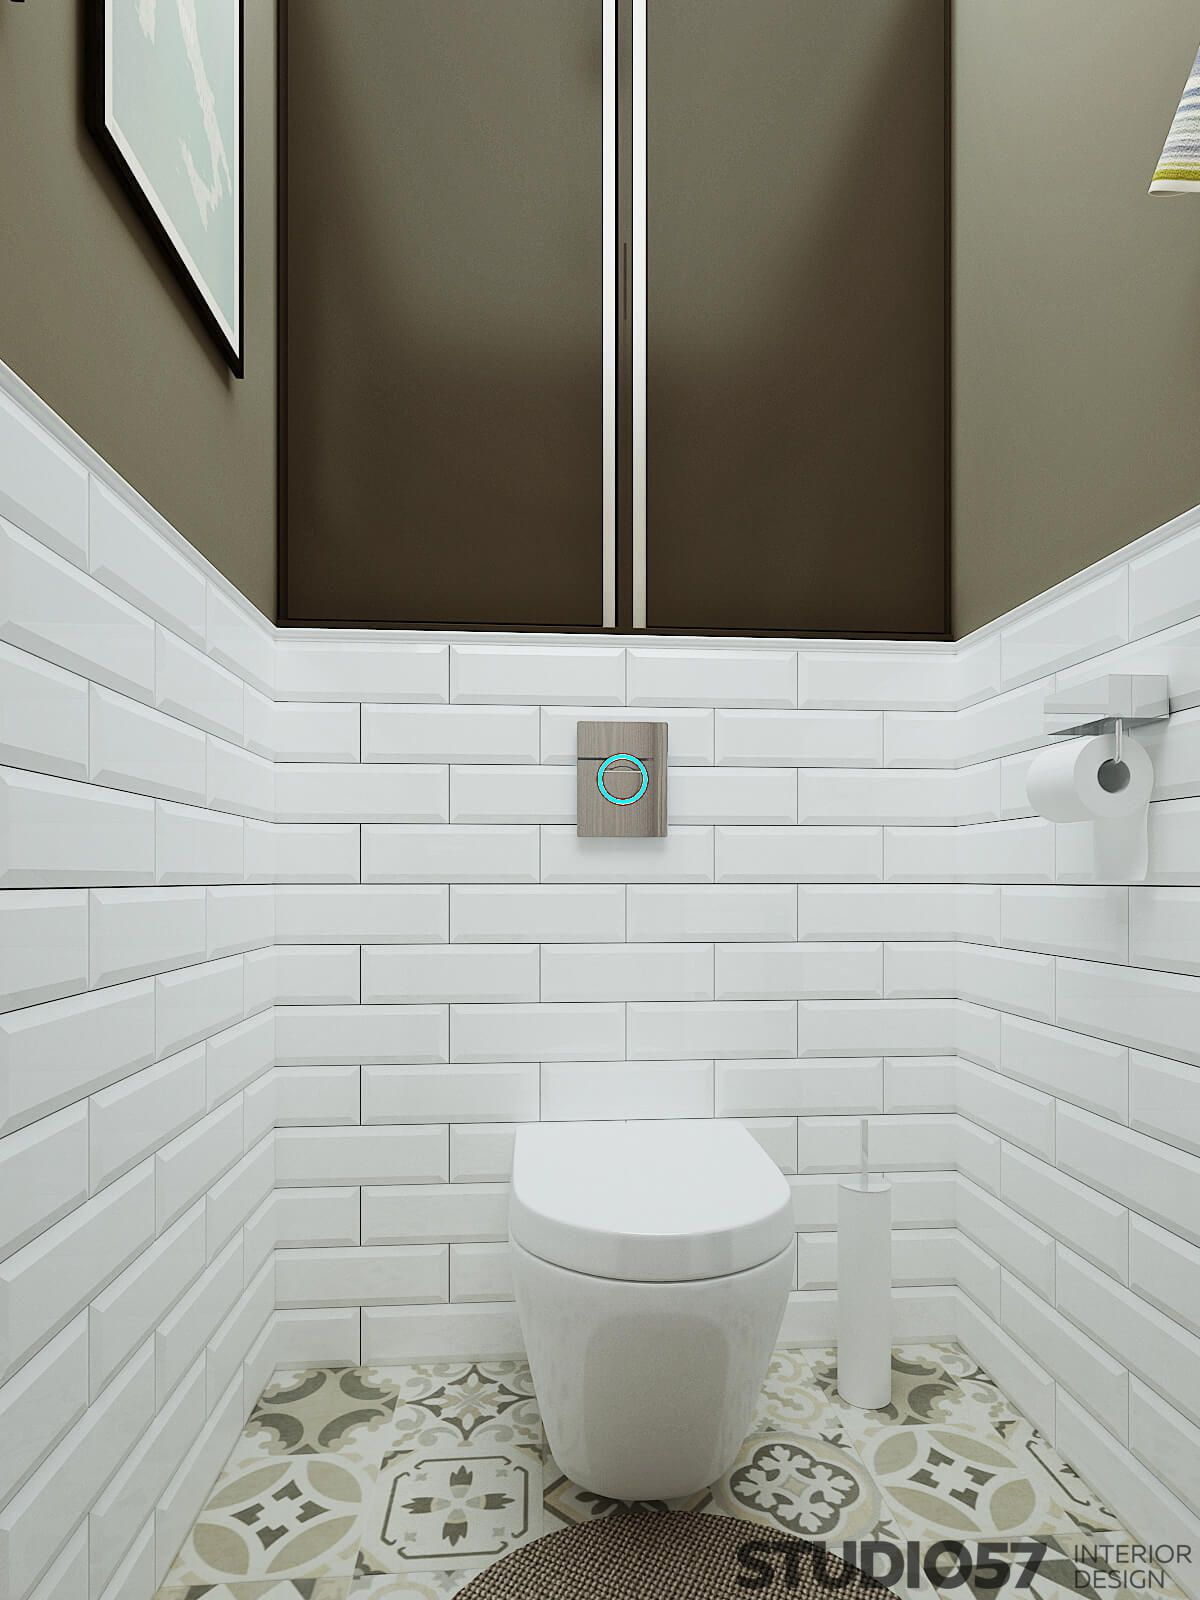 In The Design Of The Toilet Is Used Mainly White Color Accents